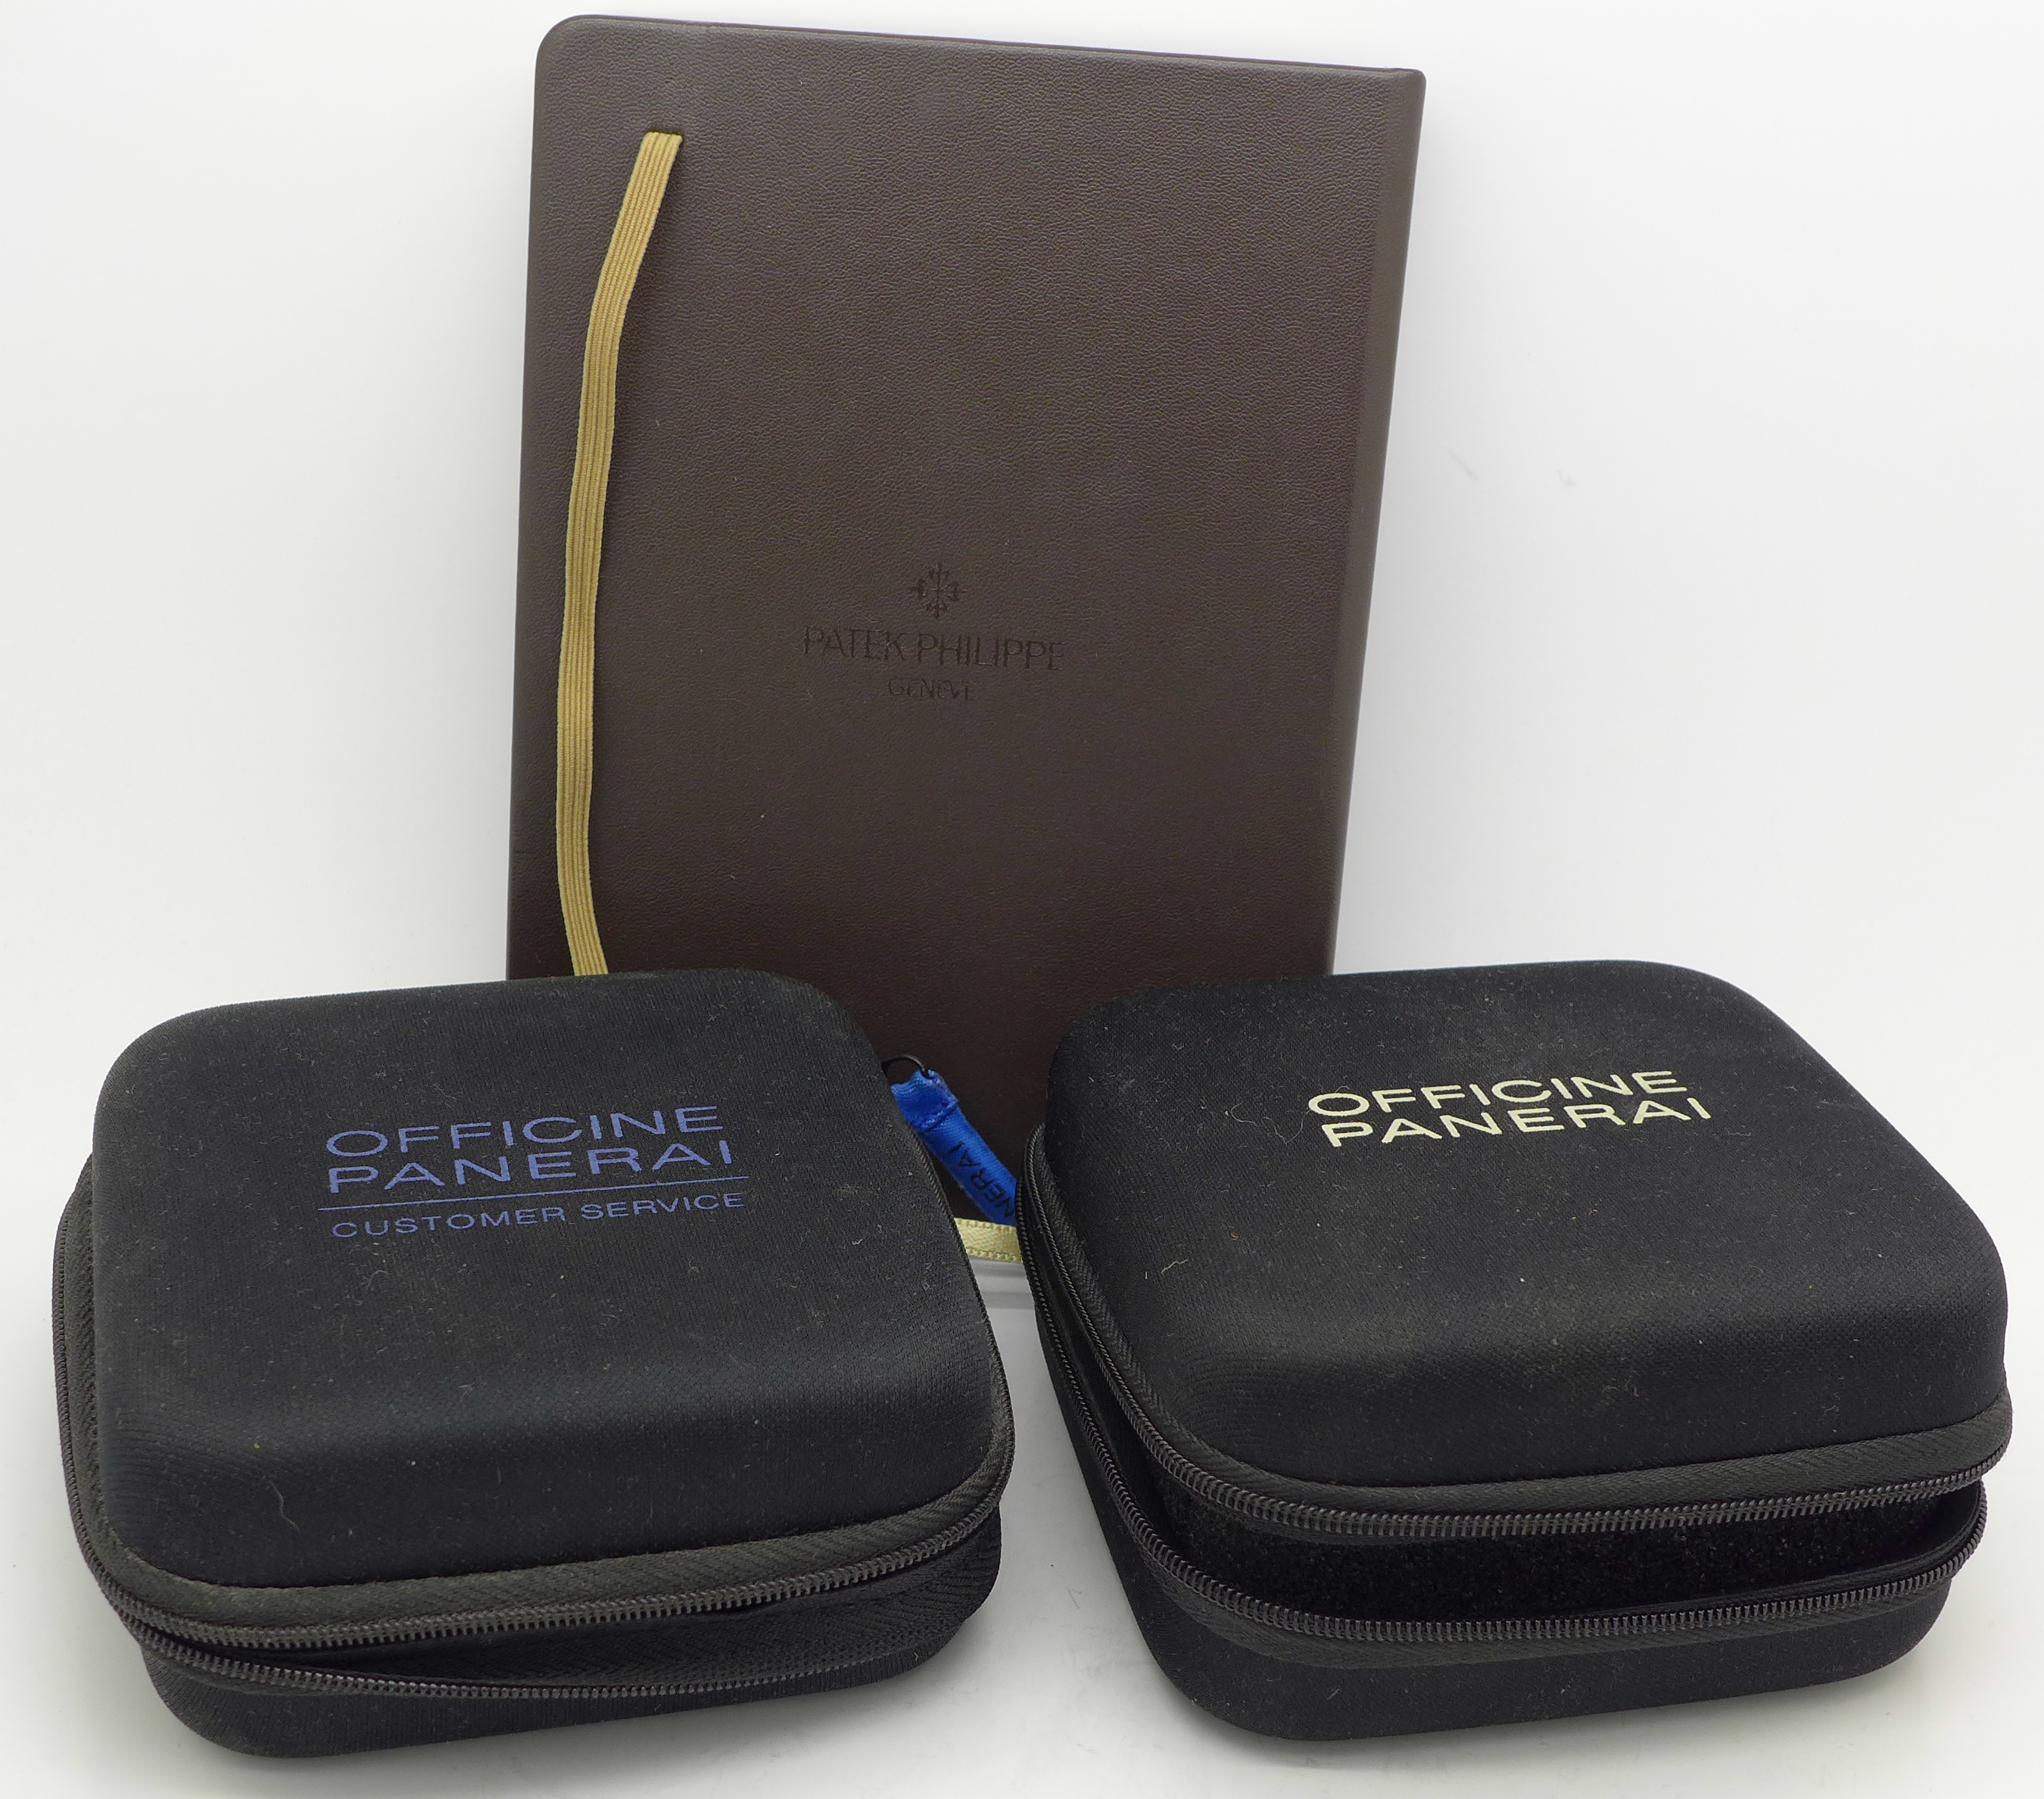 Lot 632 - A Patek Philippe notebook and two cases marked Officine Panerai